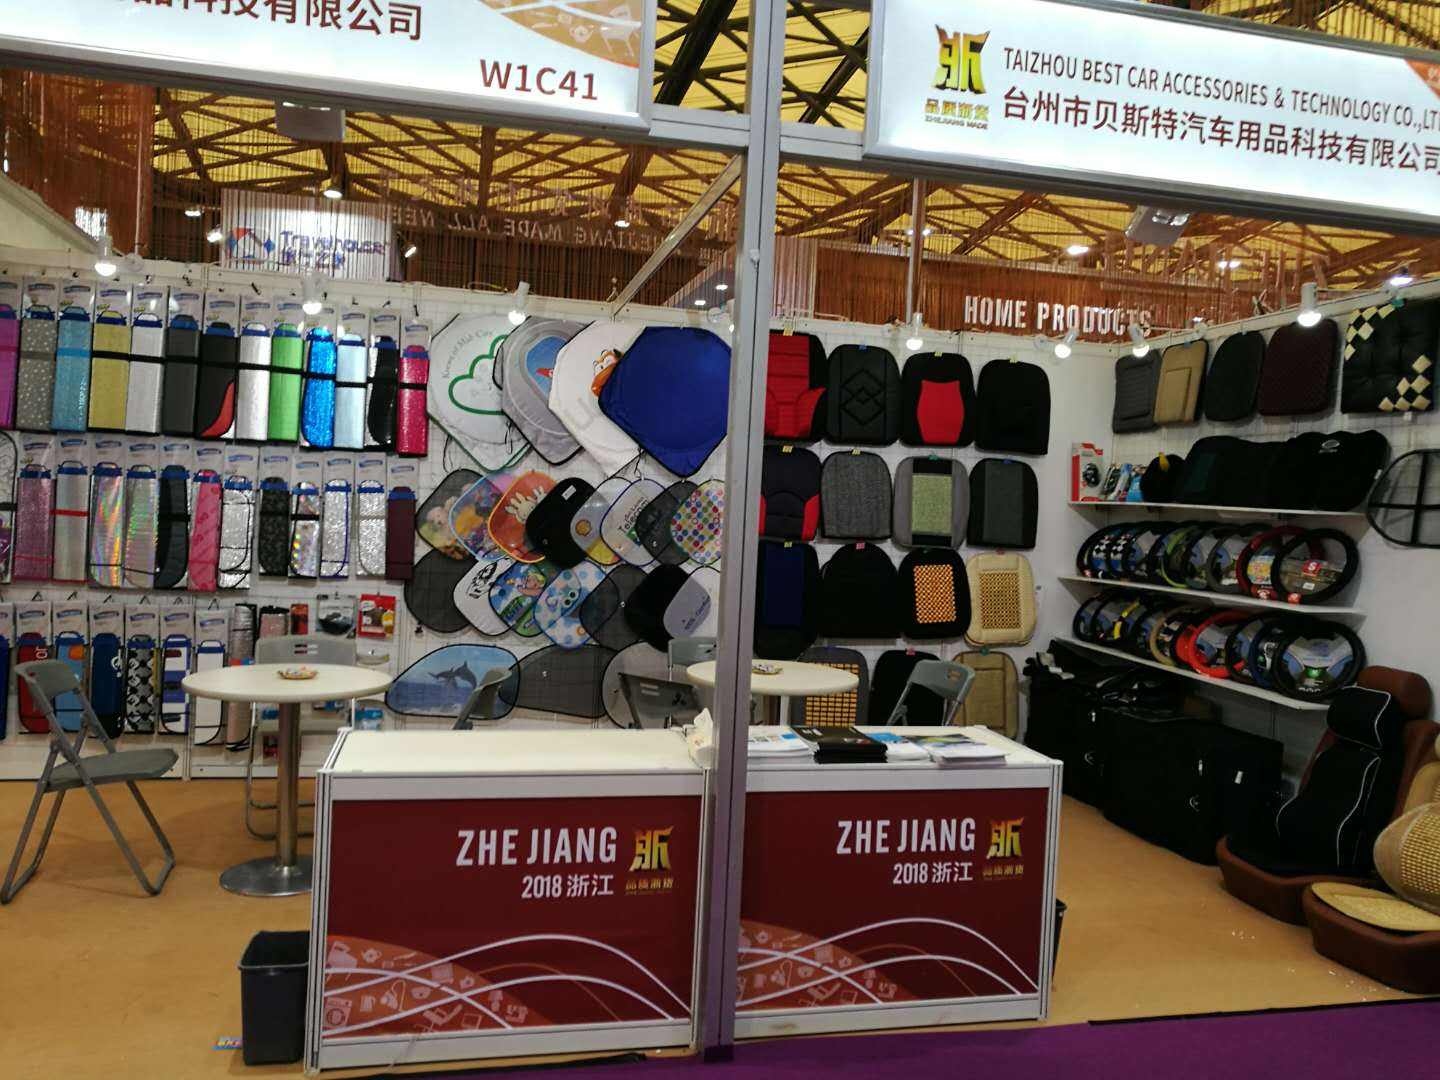 East China Fair will be held at Shanghai on March 1st to 4th